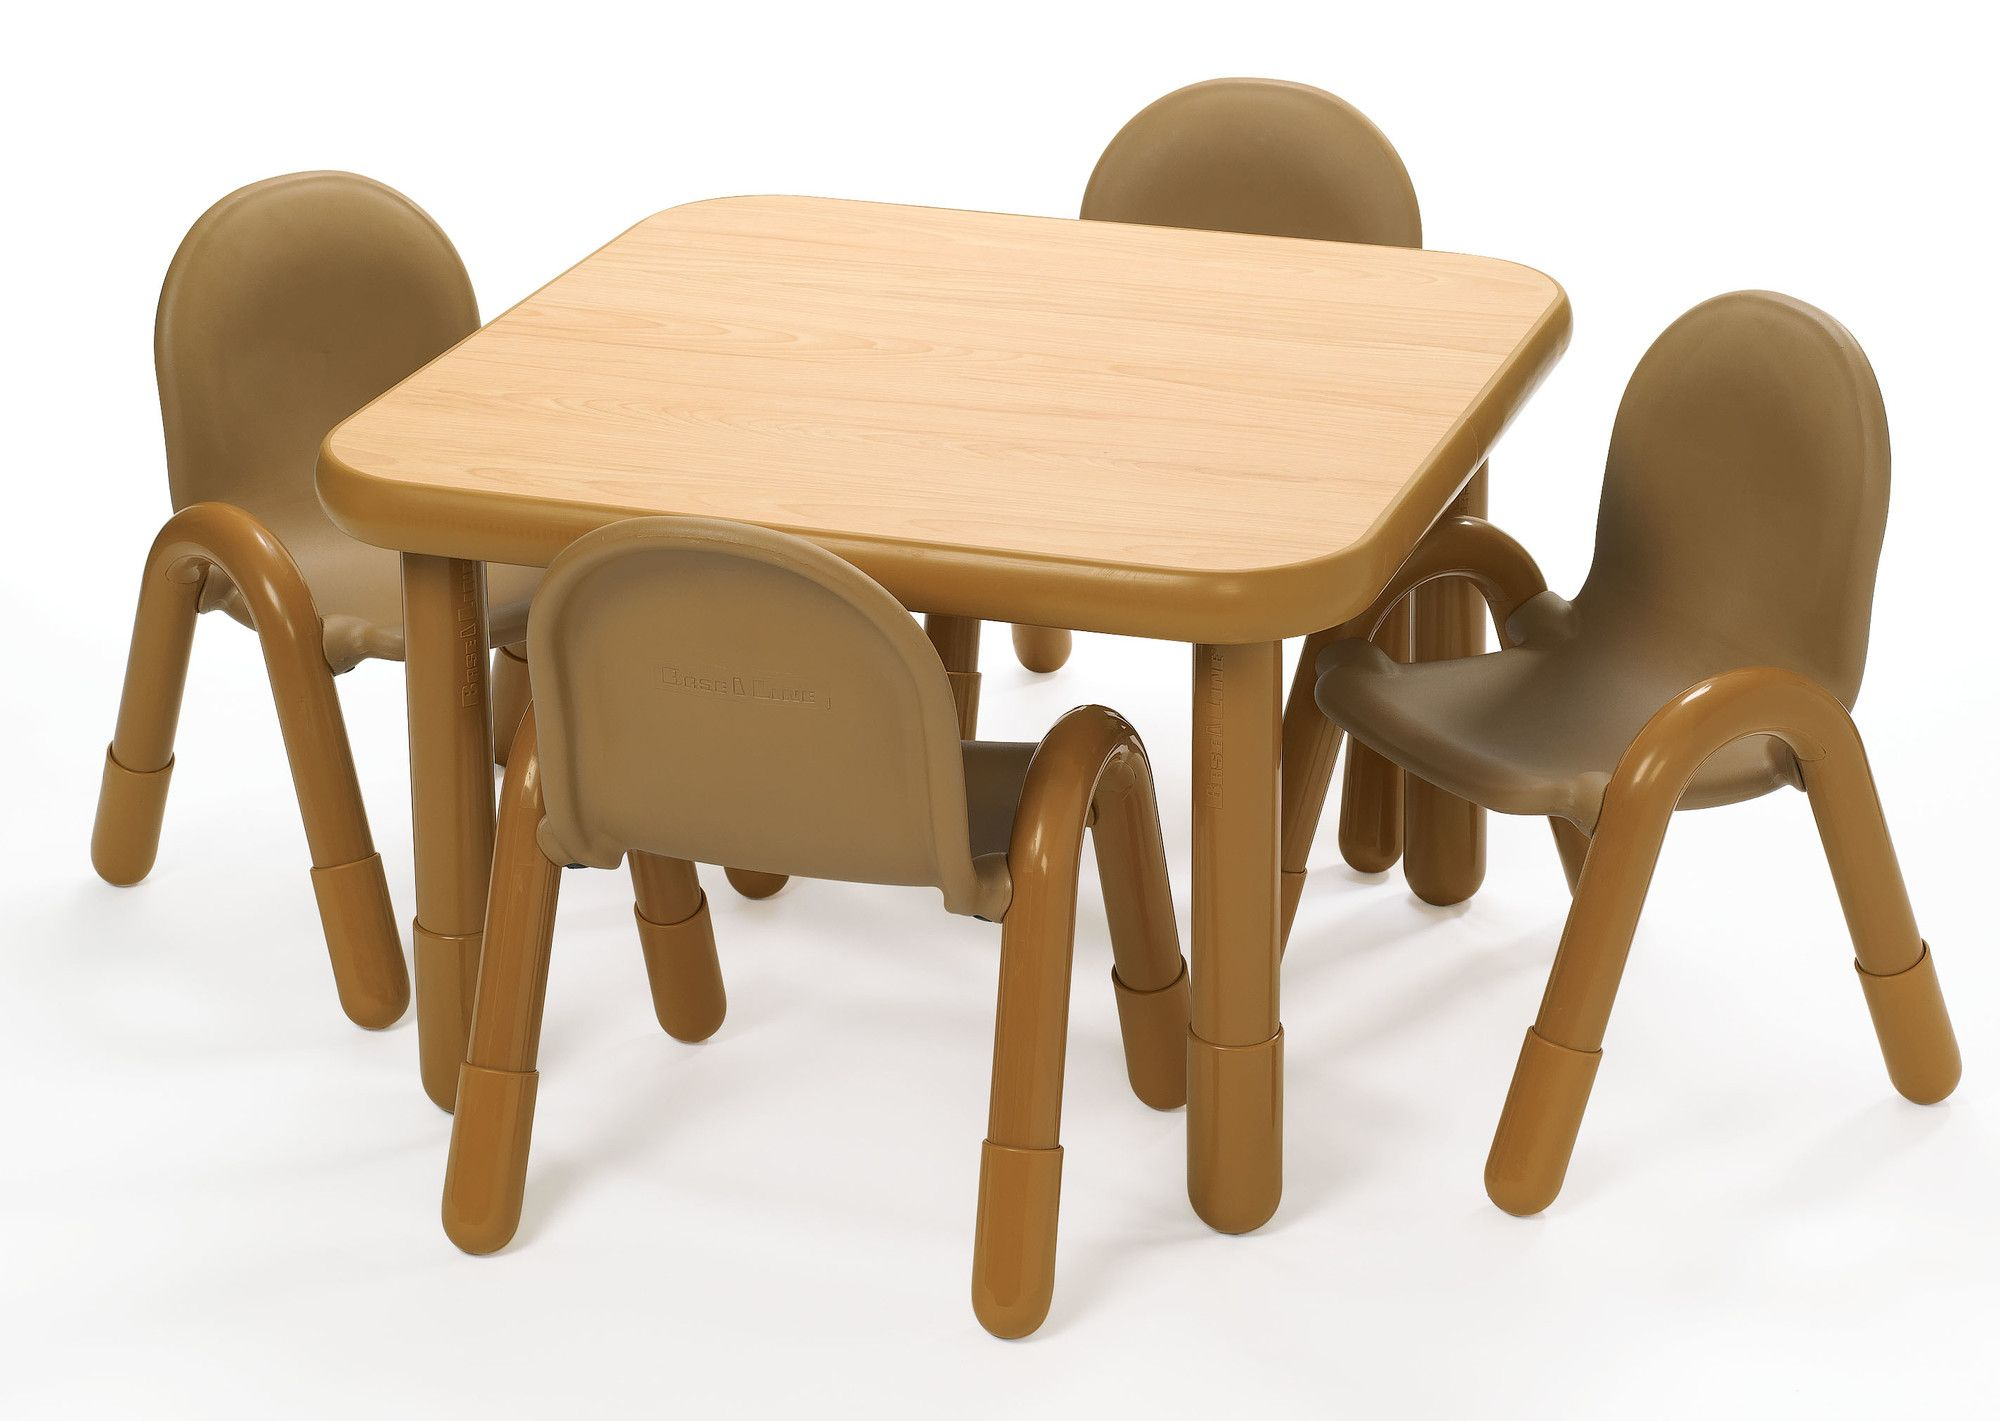 b0f8d37443ce Square Baseline Preschool Table and Chair Set in Natural